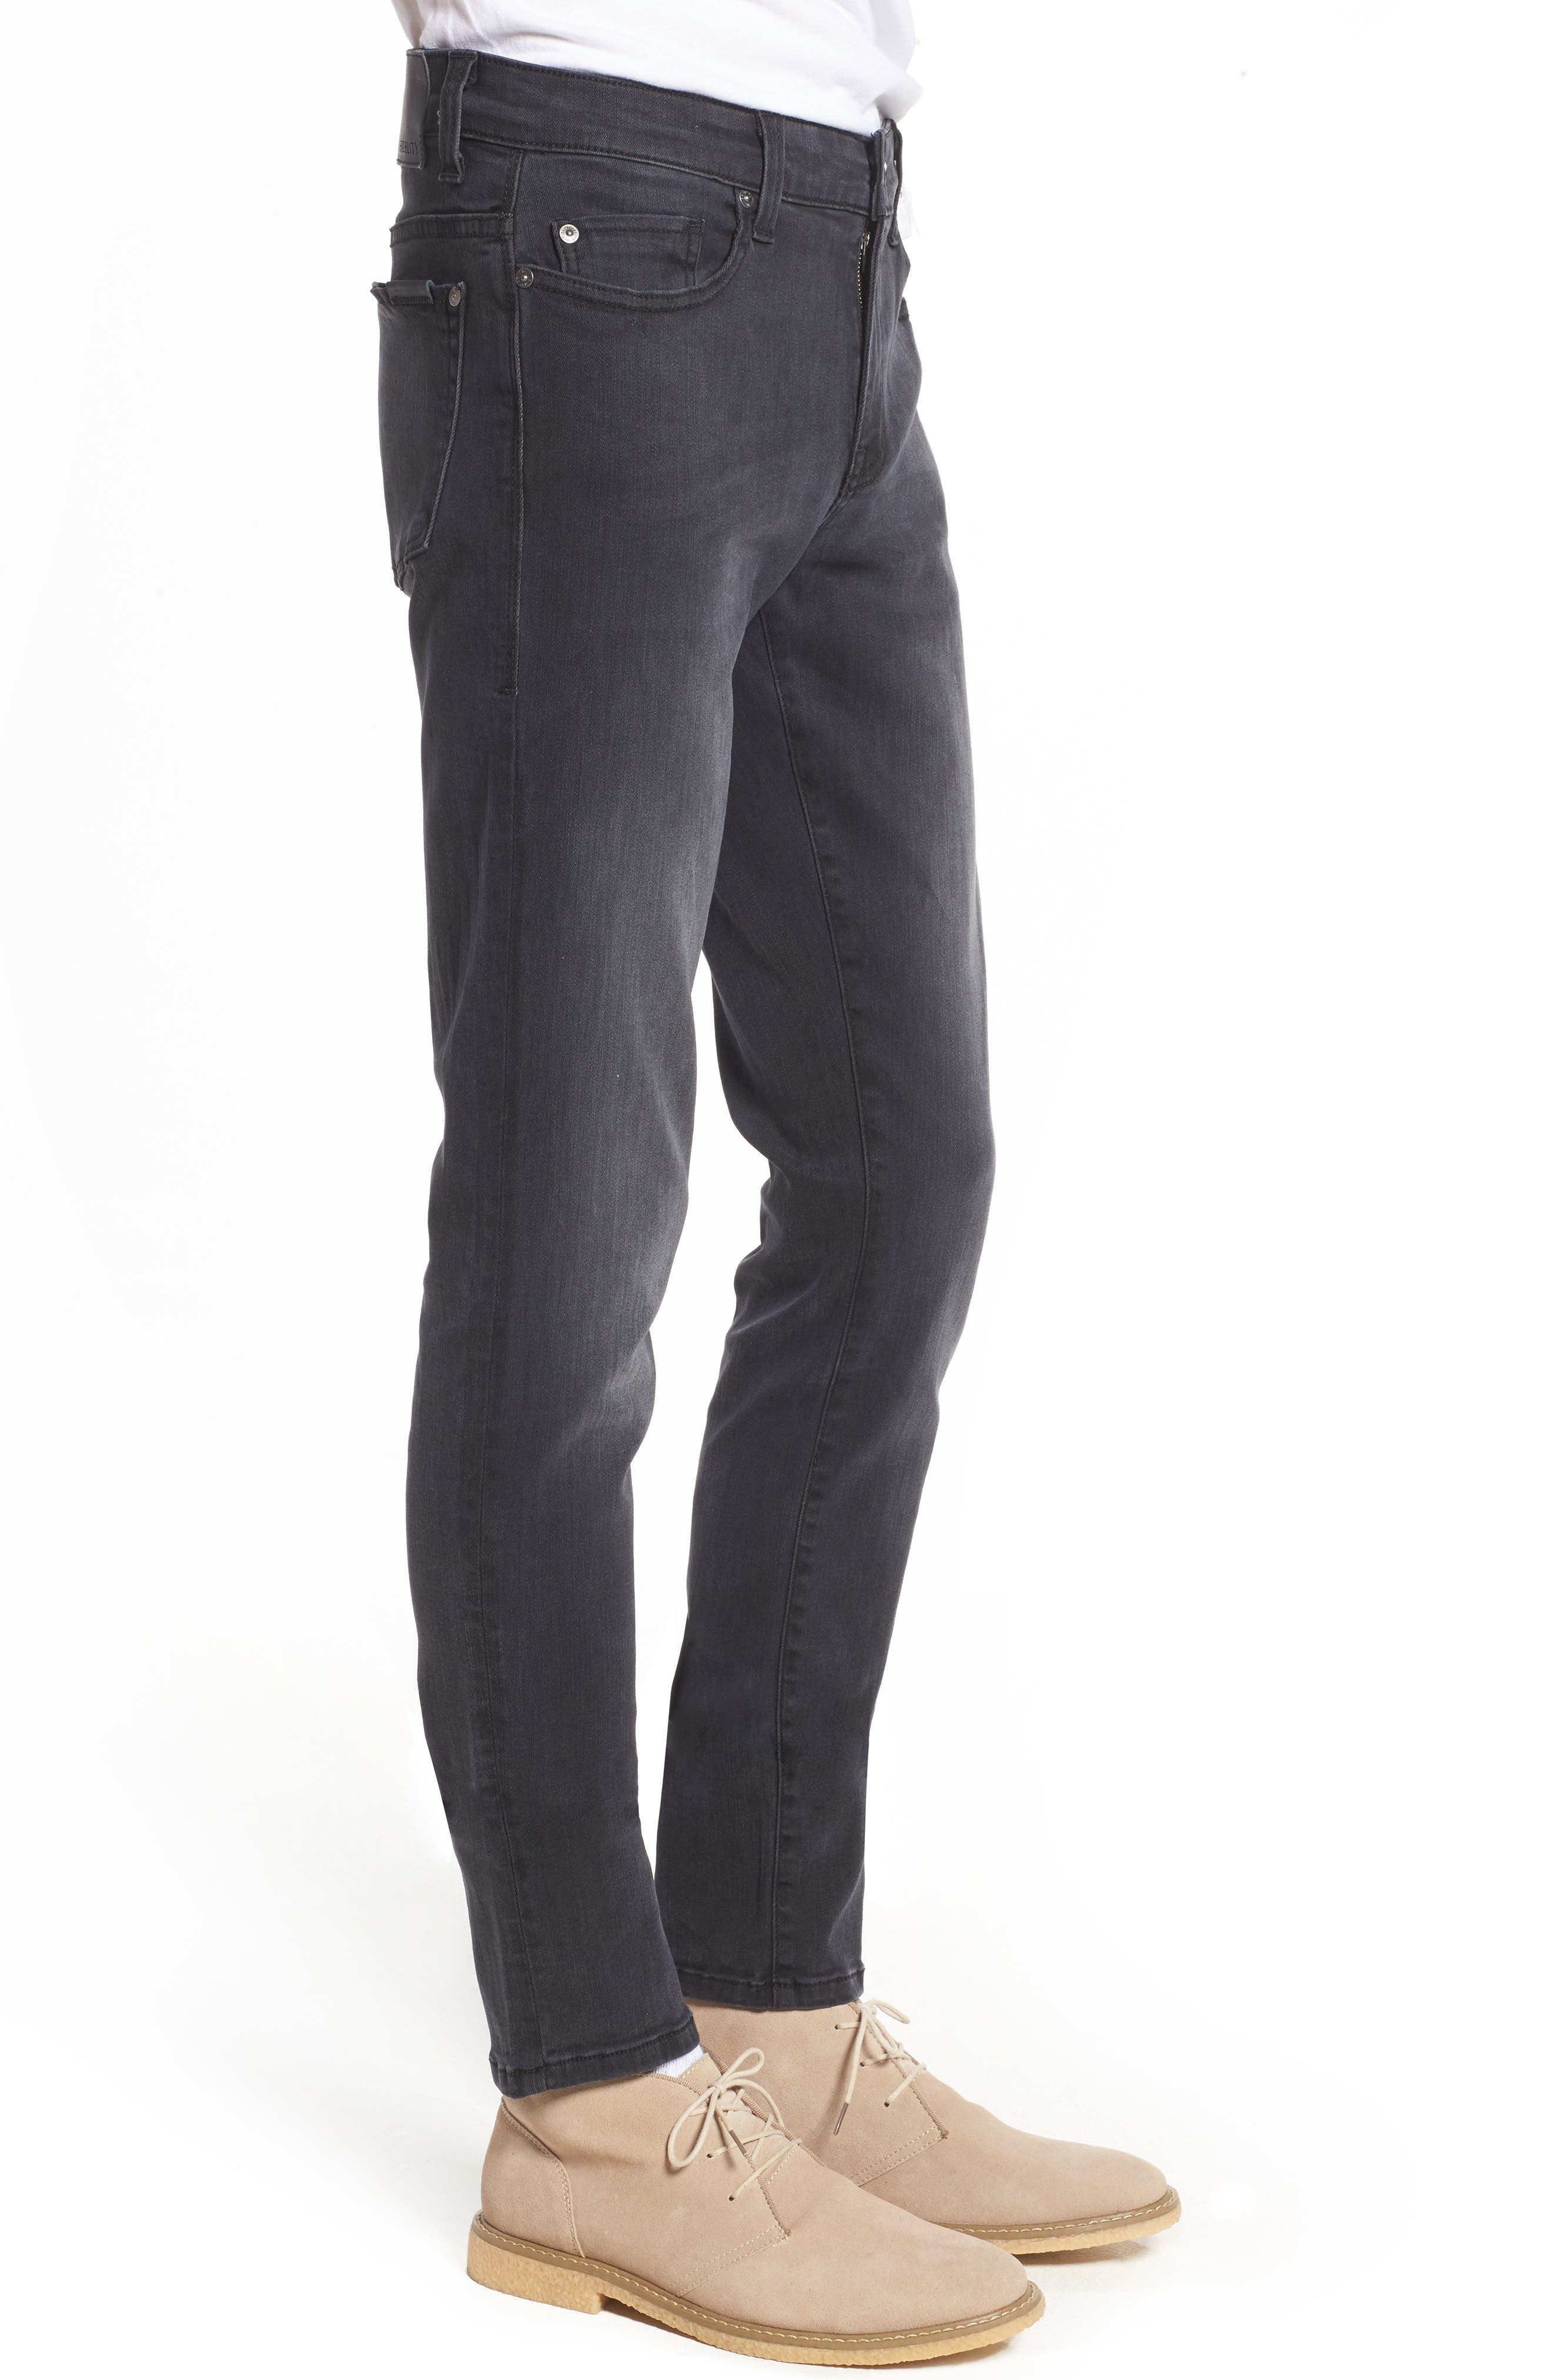 Vantage Skinny Fit Jeans,                             Alternate thumbnail 3, color,                             WOLF GREY